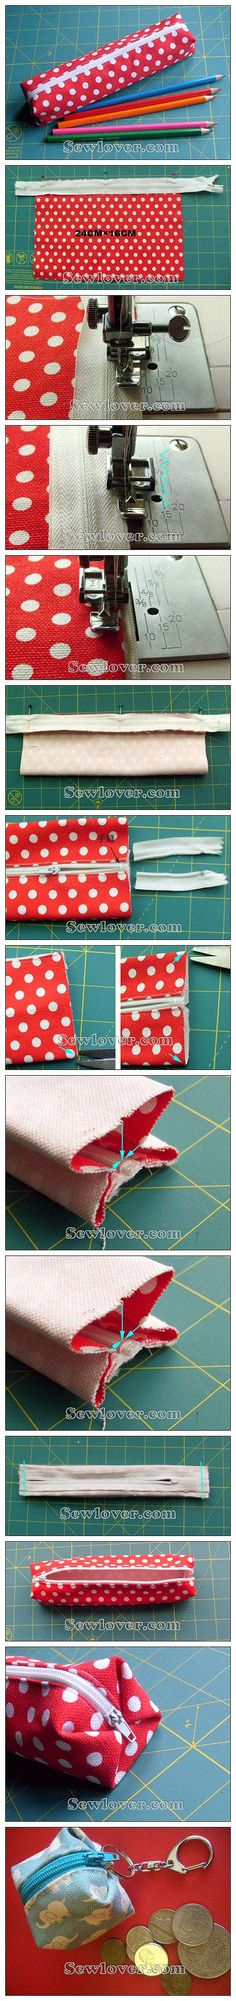 DIY pencil bag or cube coin bag with zipper!